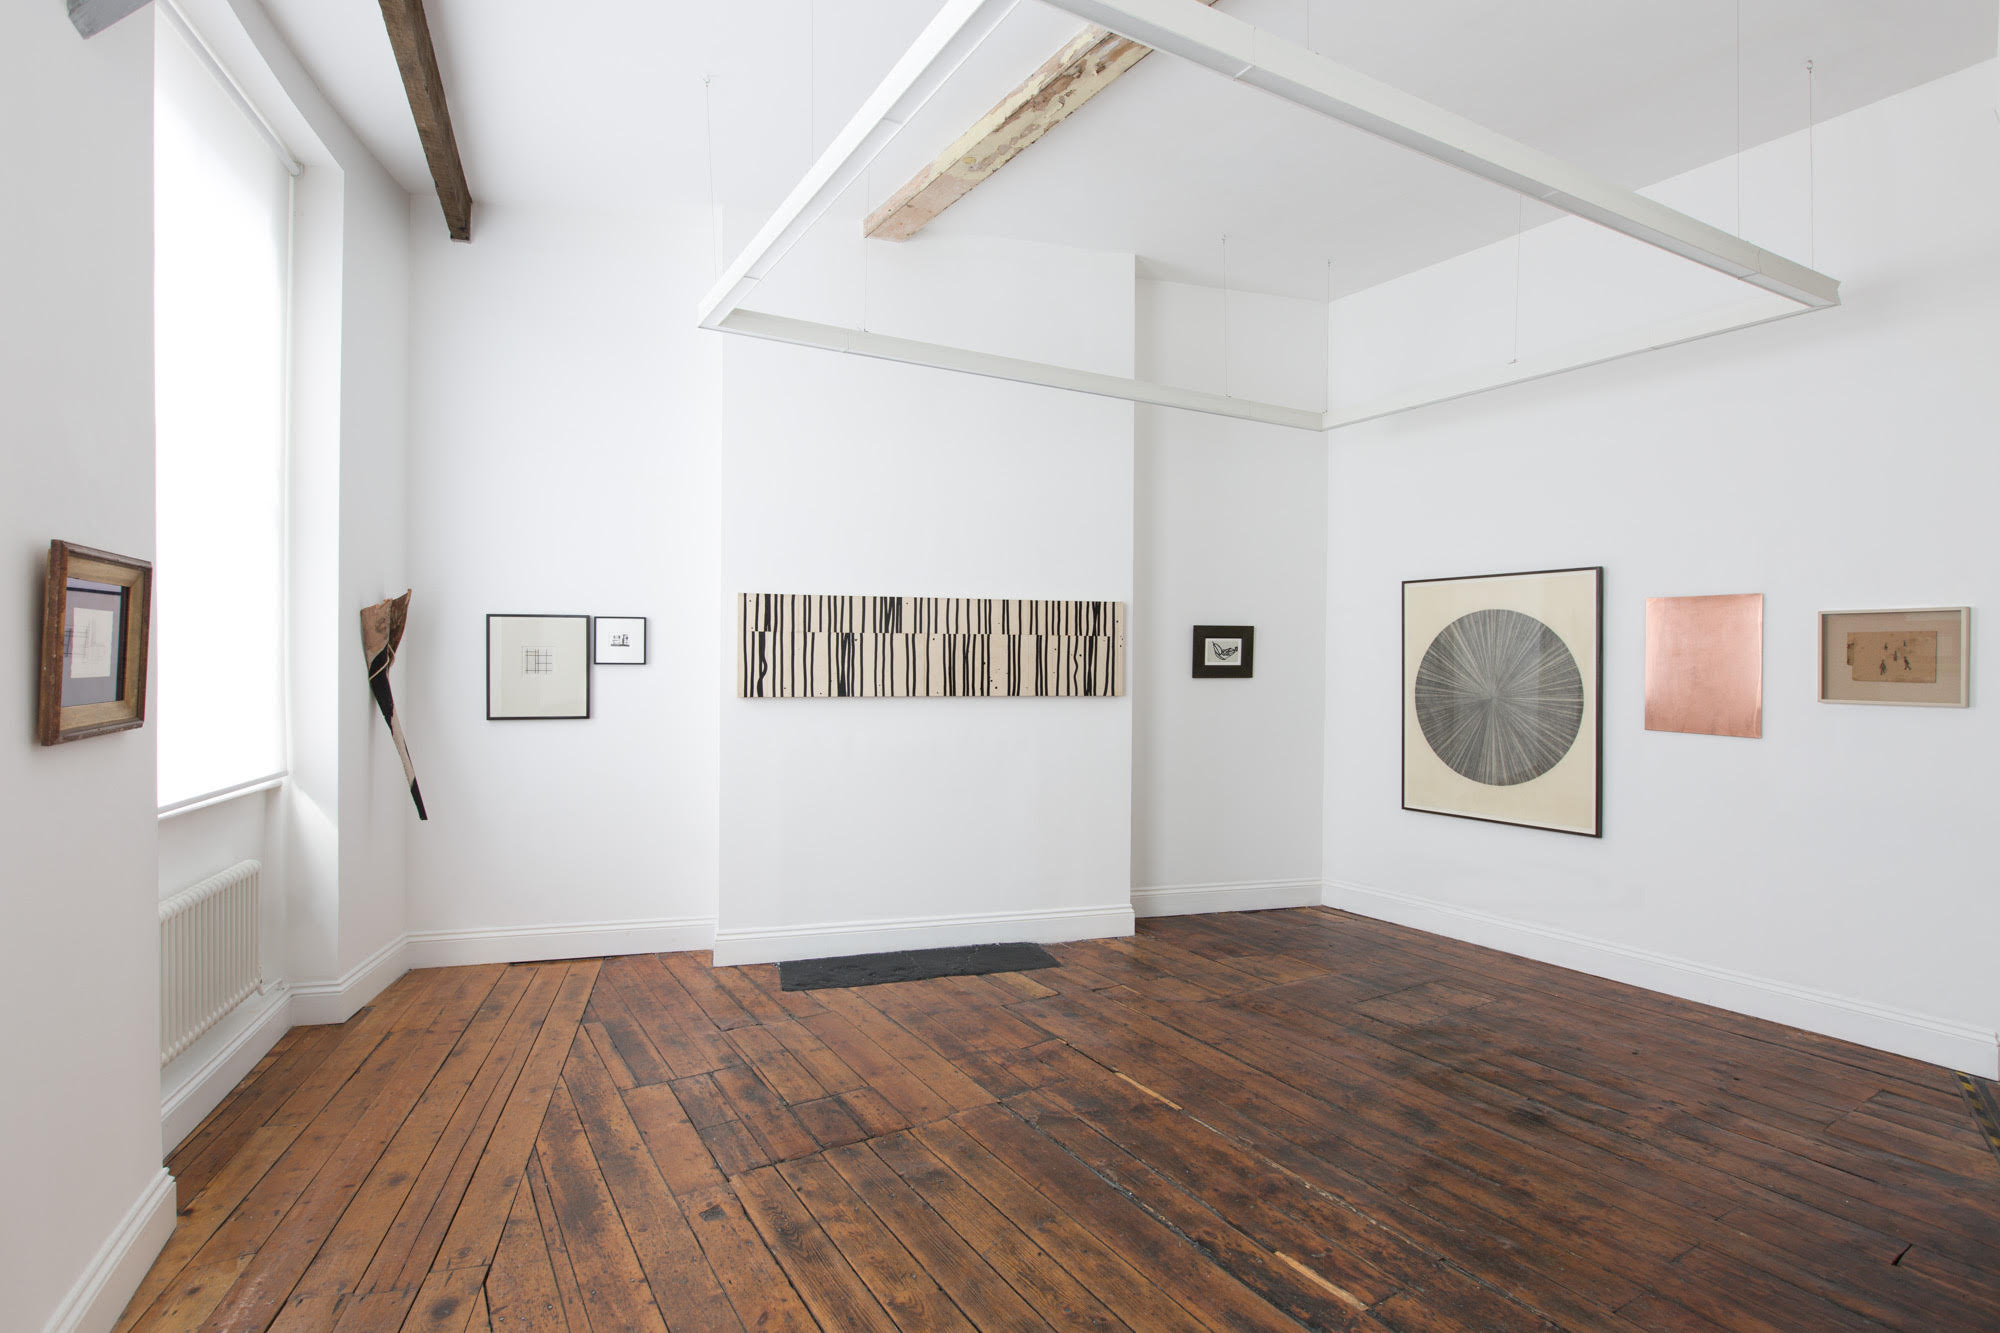 Installation View, Humble Black Line, Frameless Gallery